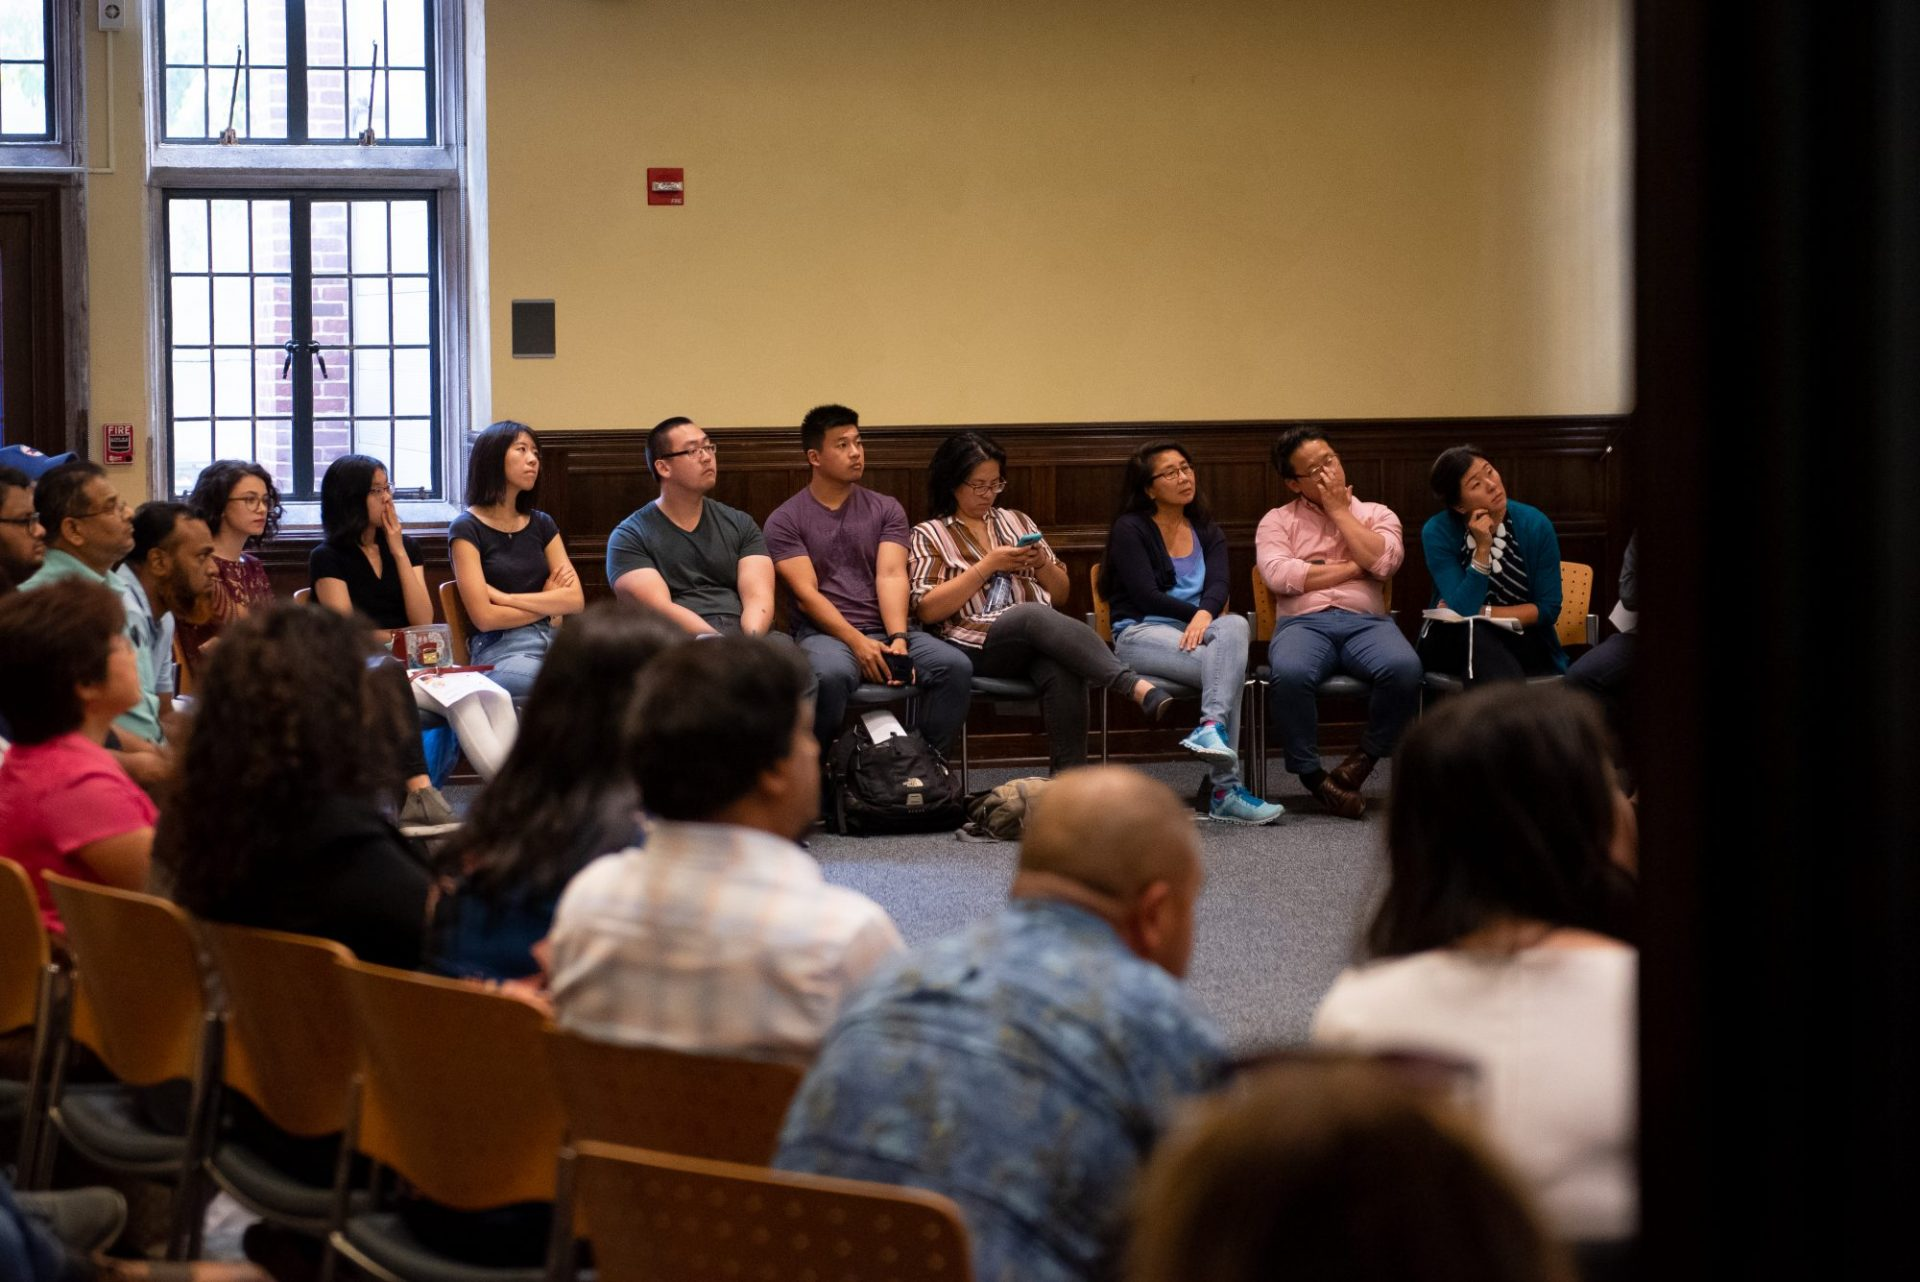 Attendants listen to a presentation during the Asian American/Pacific Islander town hall on the 2020 census at the University of Pennsylvania on Saturday, Sept. 7, 2019.